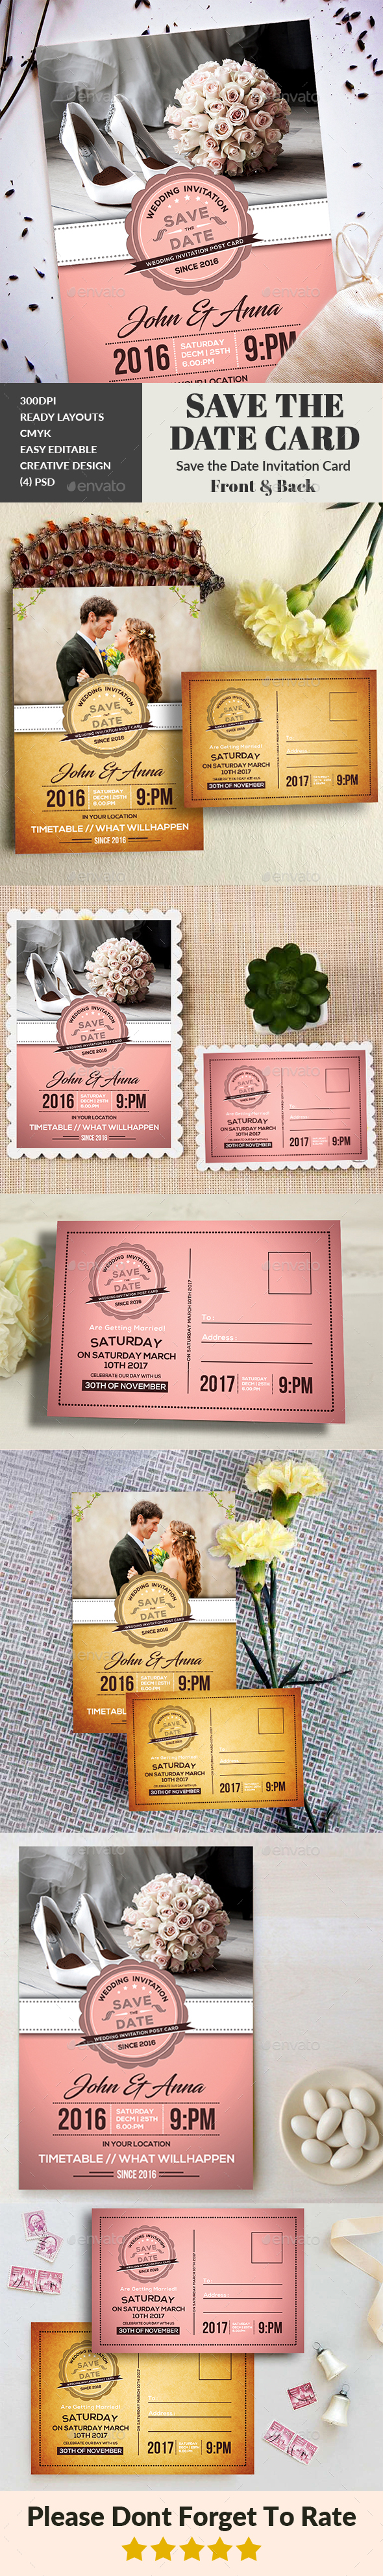 Wedding Invitation Card - Weddings Cards & Invites